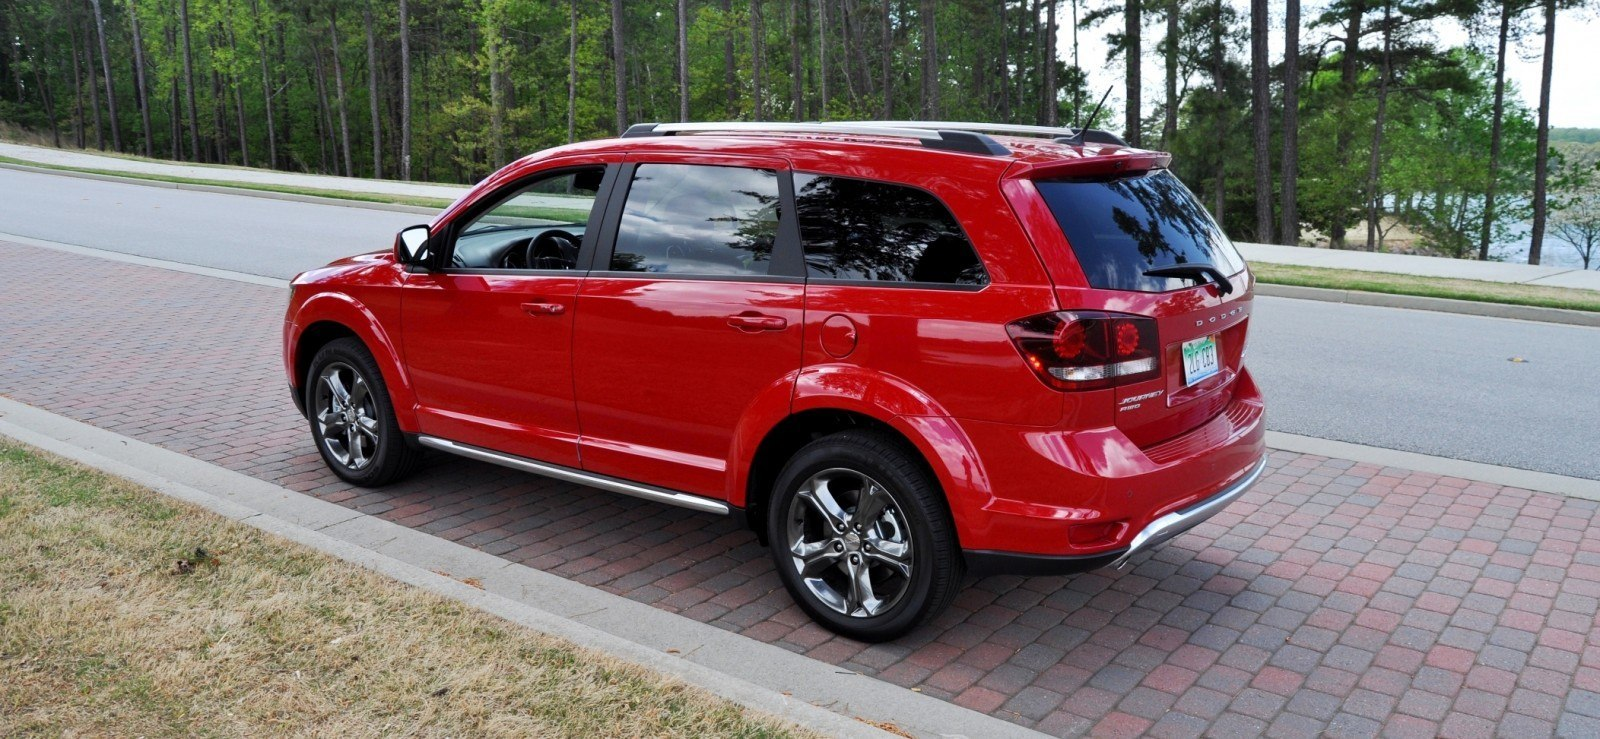 Road Test Review - 2014 Dodge Journey Crossroad - We Would Cross the Road to Avoid 21